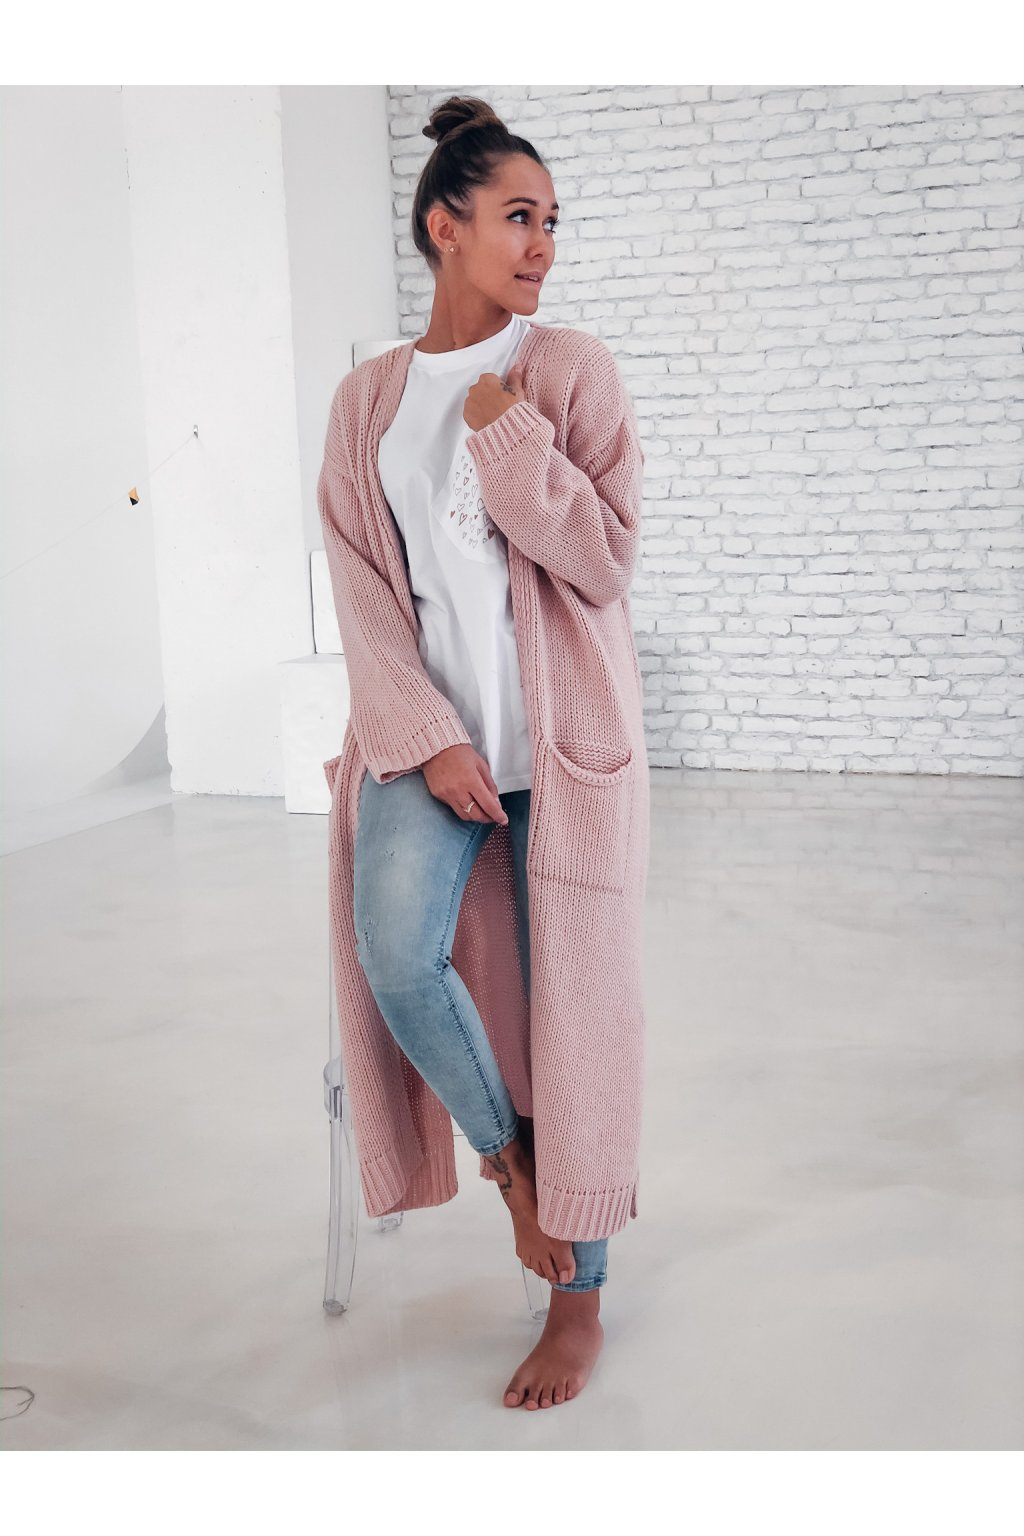 damsky cardigan long powder pink eshopat cz 1